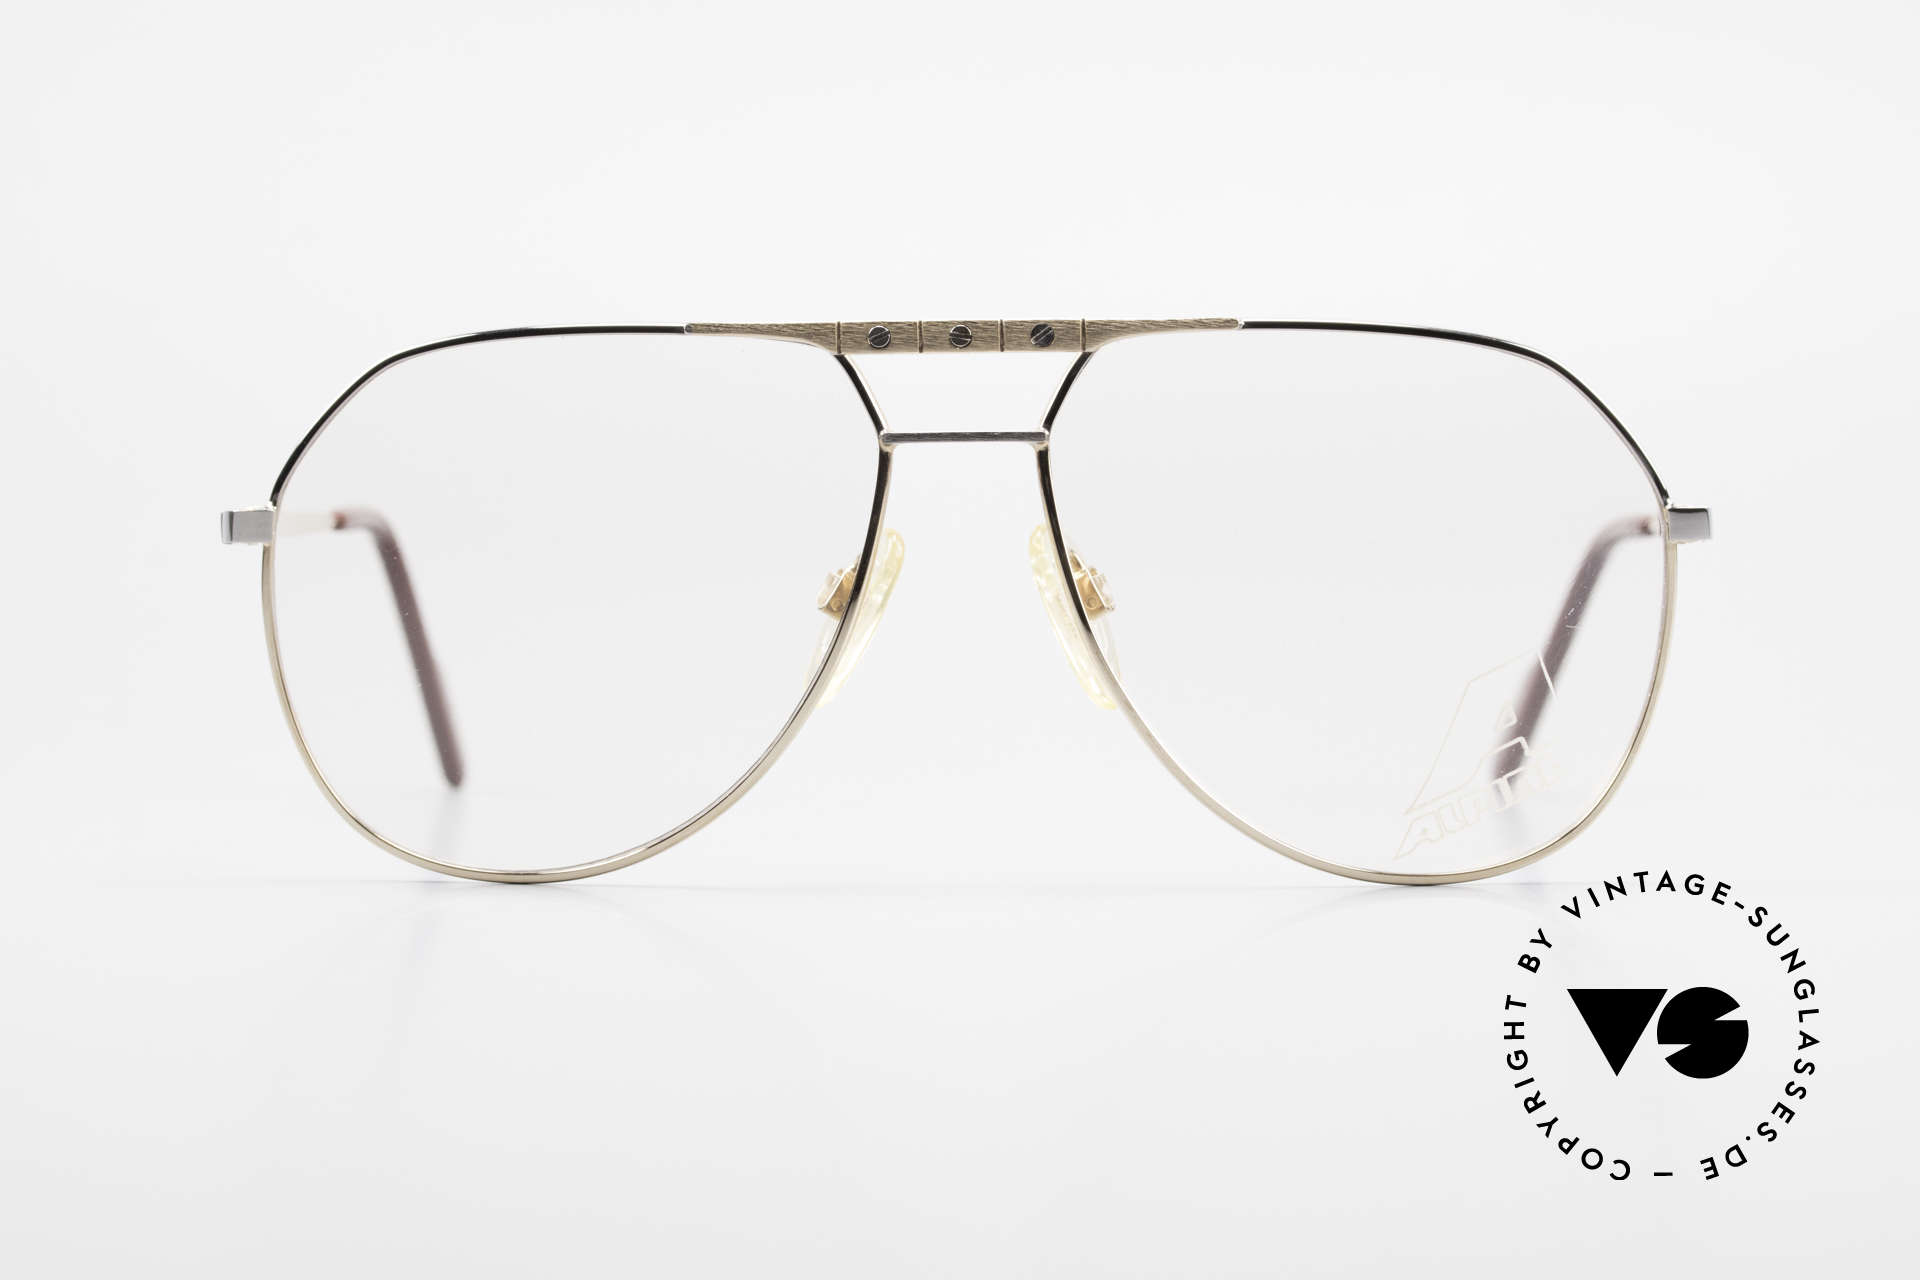 Alpina FM27 Classic Aviator Eyeglasses 80s, tangible premium craftsmanship; made in W.Germany, Made for Men